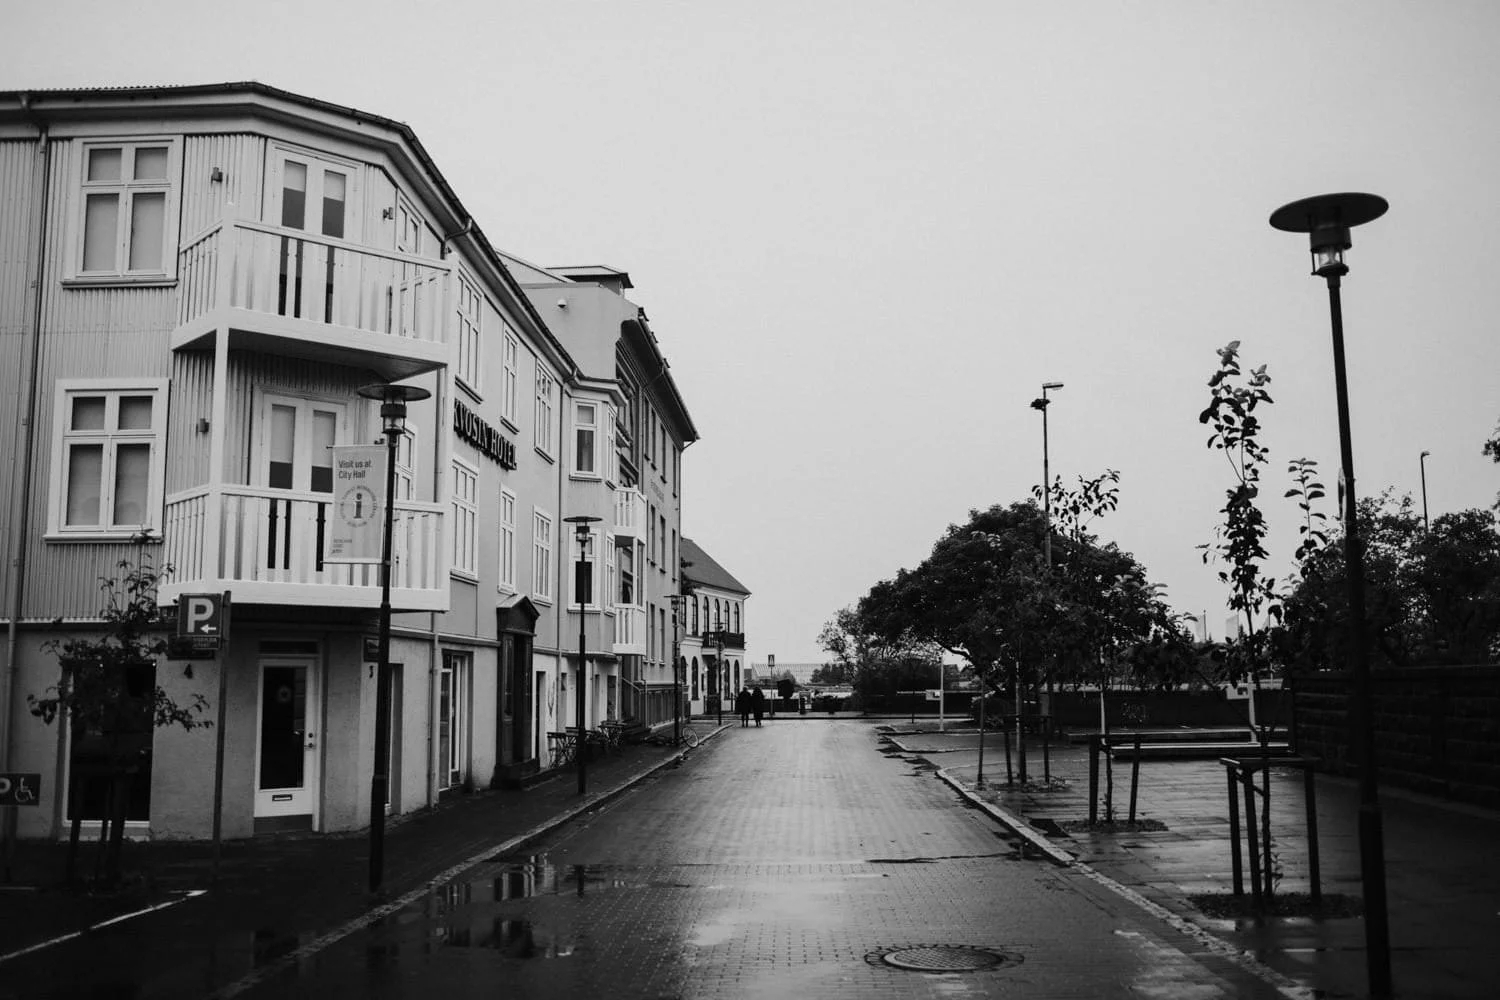 The streets of Reykjavik, Iceland, outside of Idno Theatre.